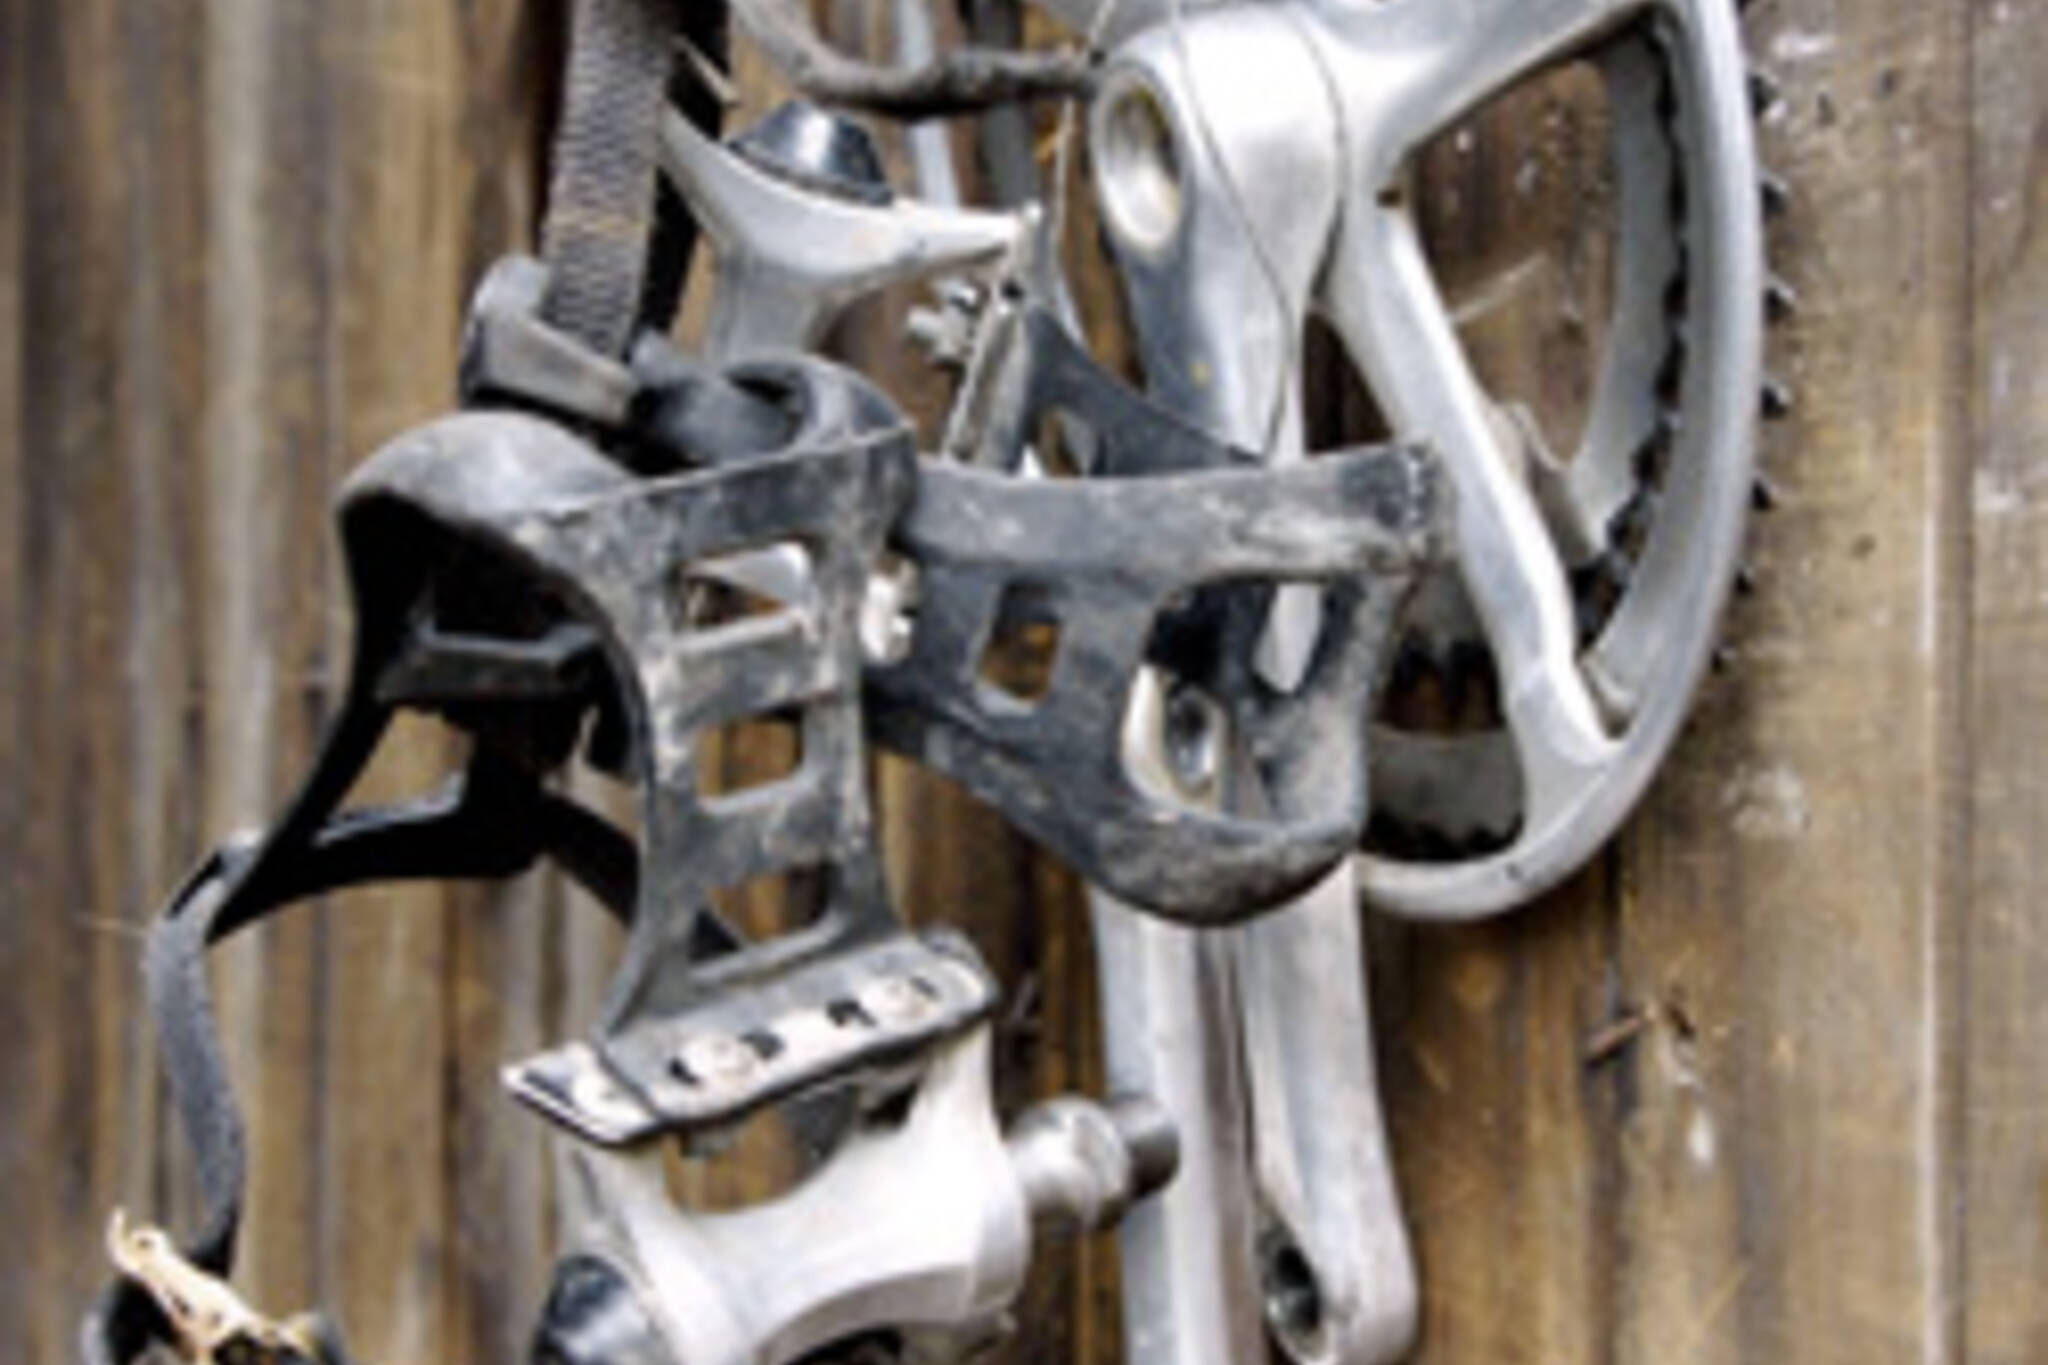 Igor Kenk's stolen bike parts hang by a nail on a garage raided by Toronto police